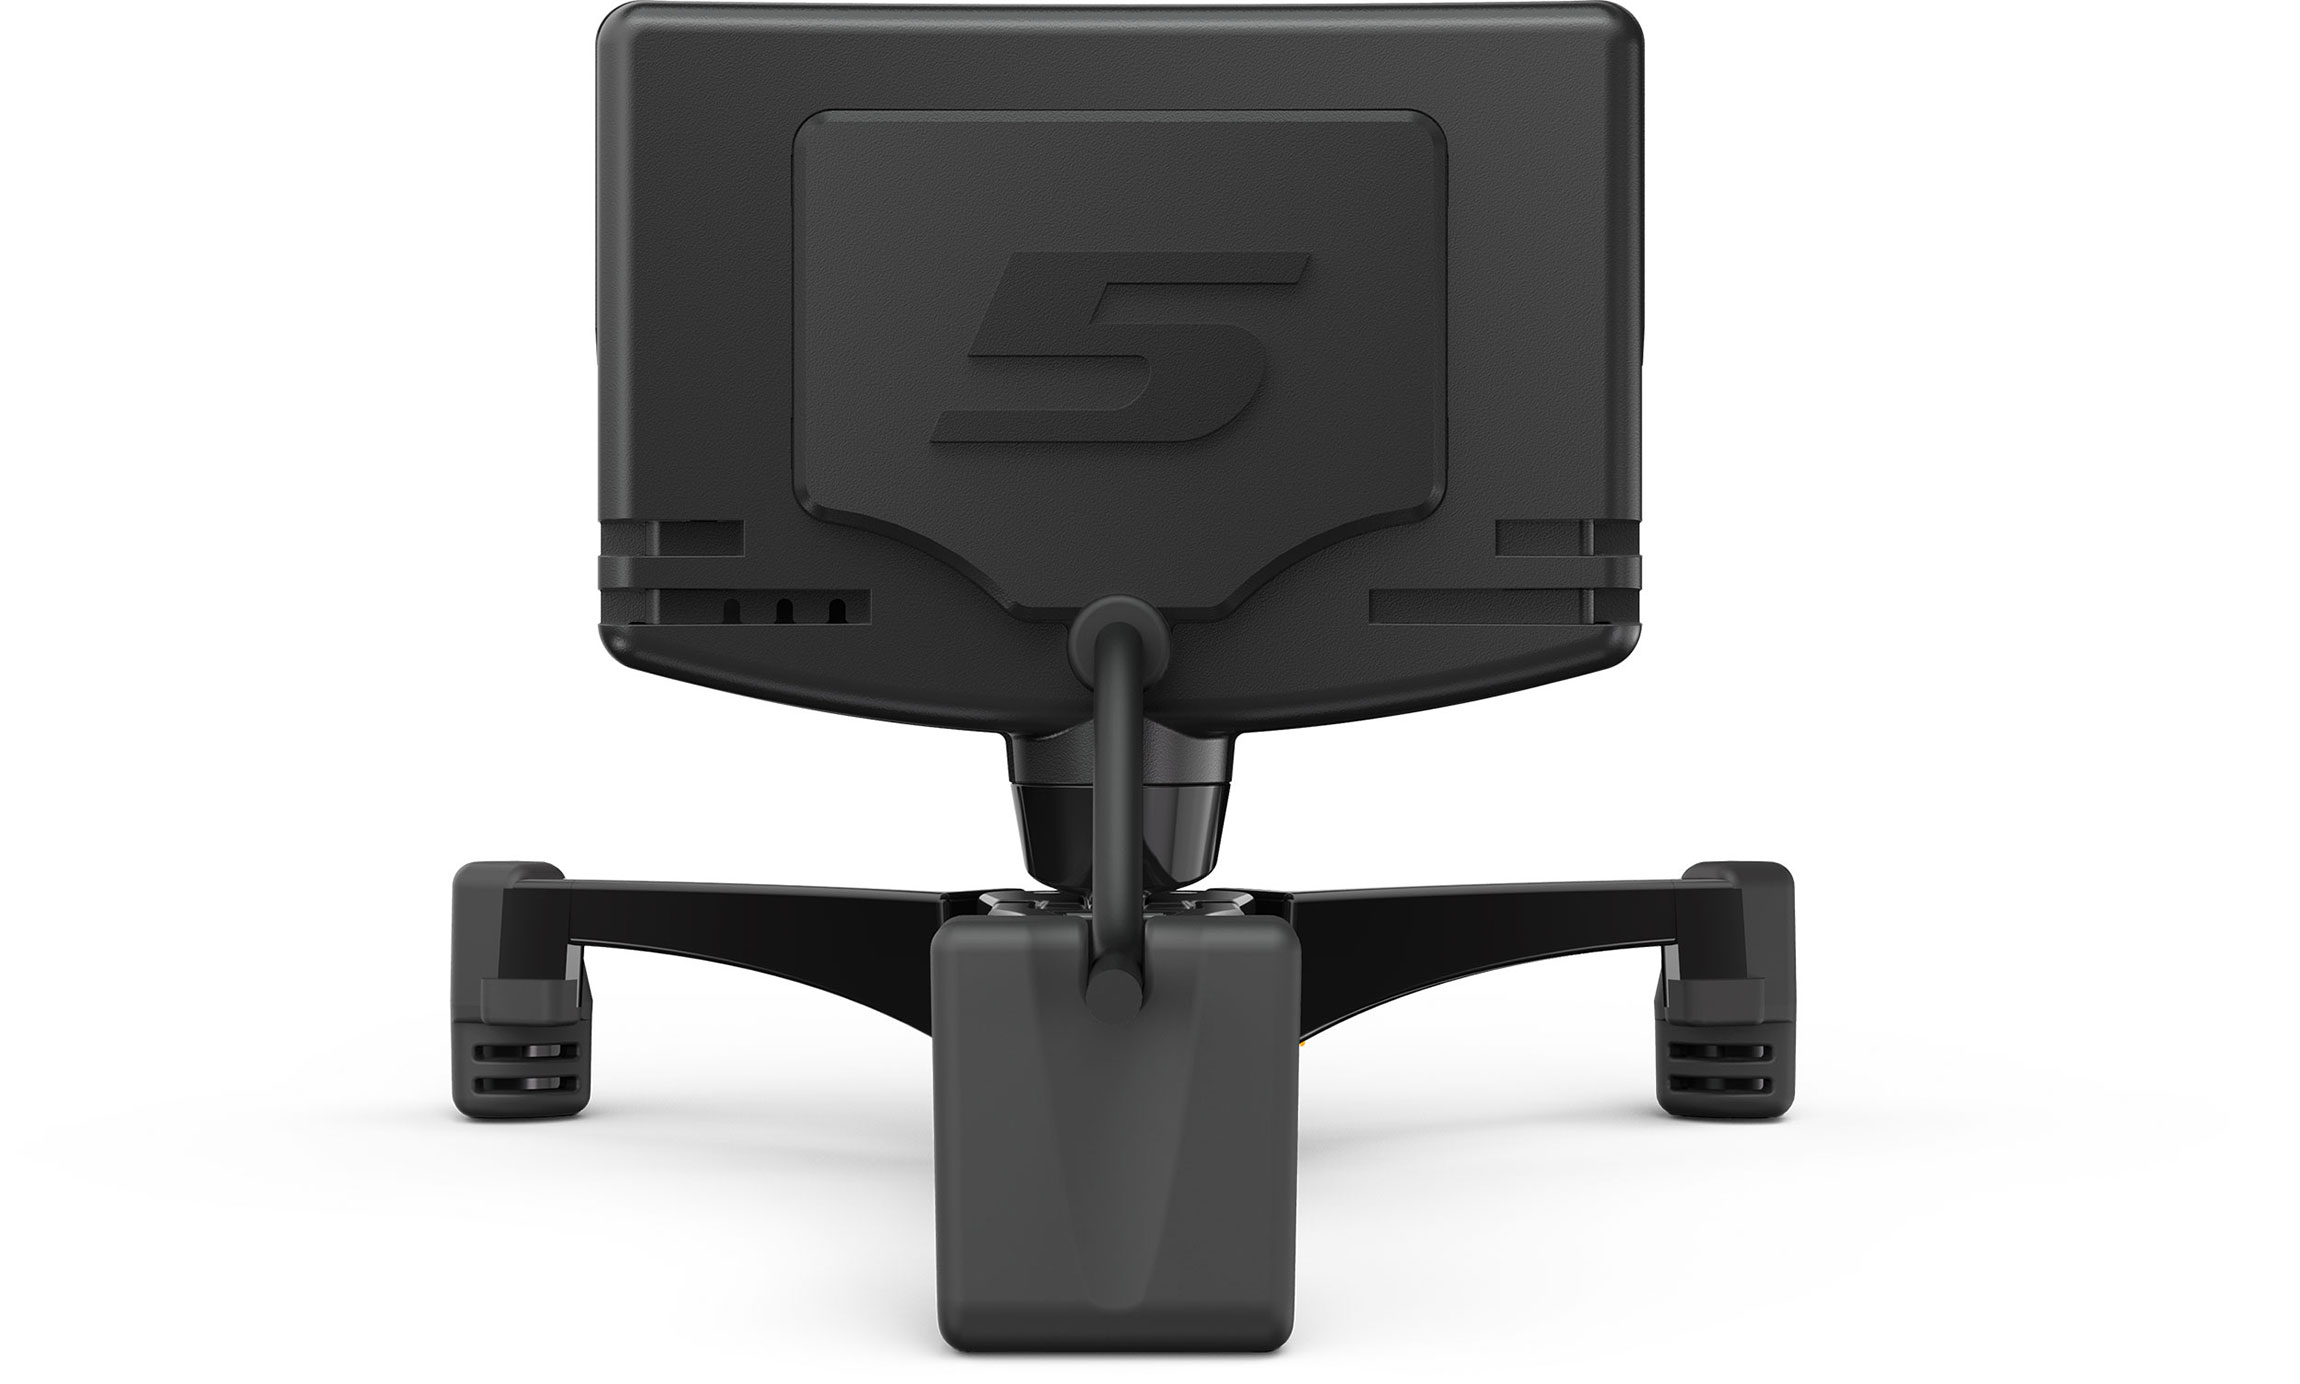 Natural Point - TrackIR 5 Gamer Set